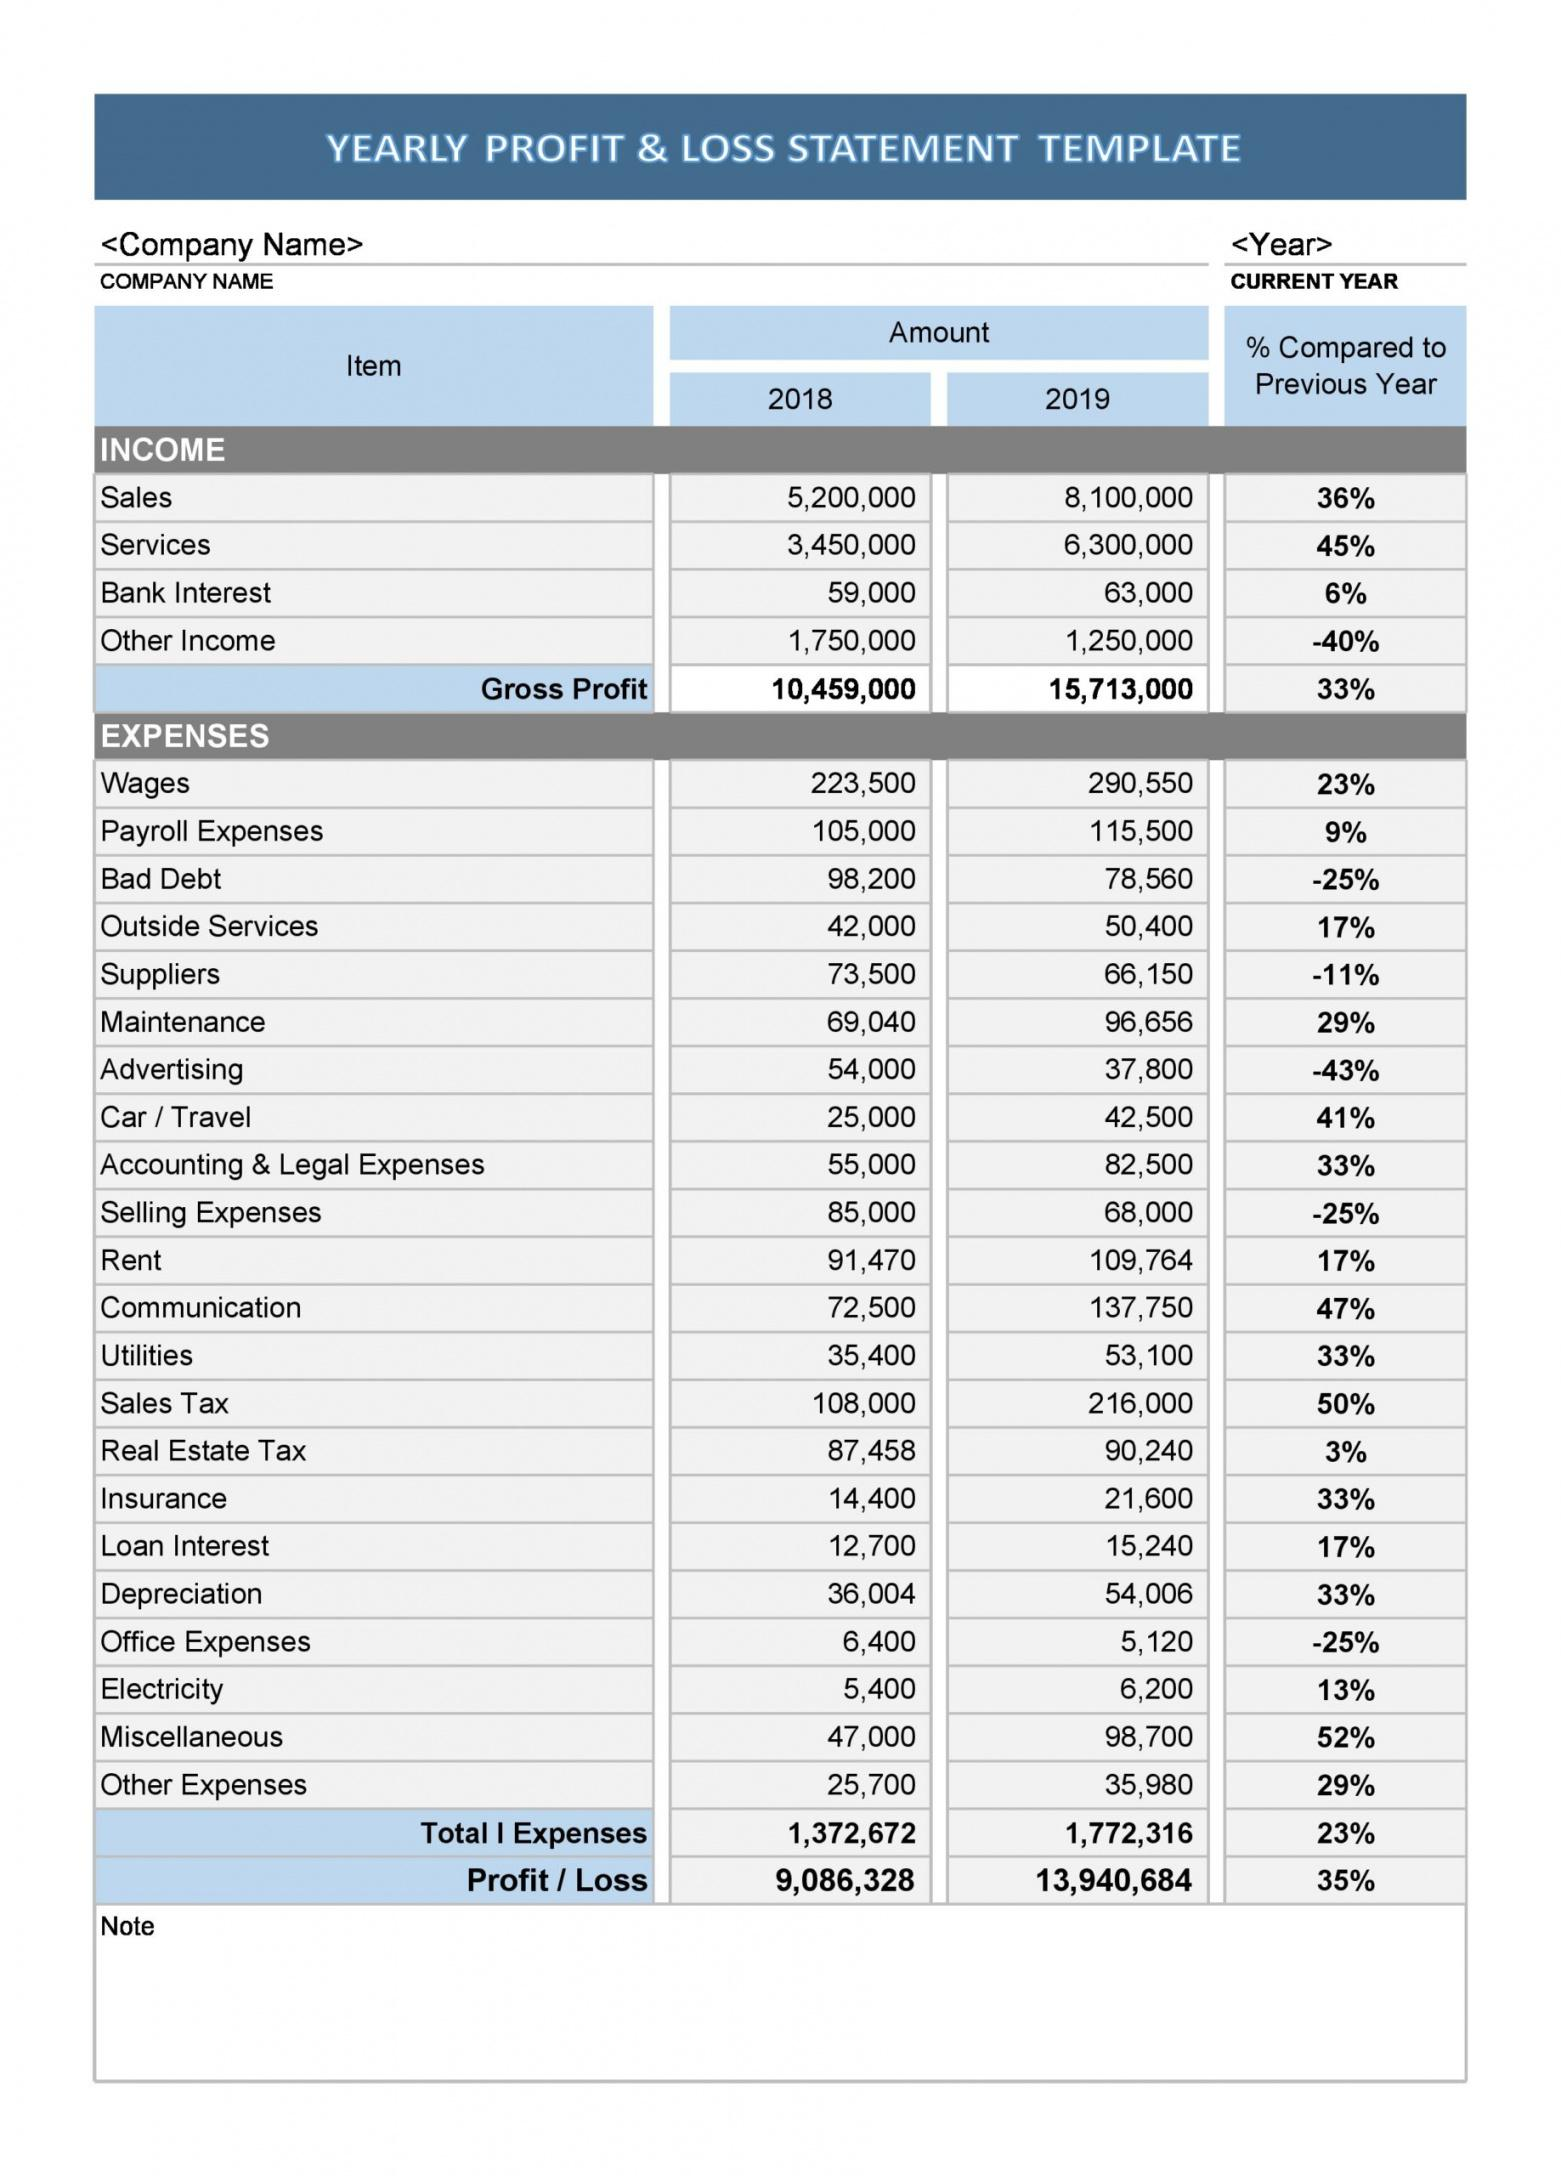 free 35 profit and loss statement templates & forms year end profit and loss statement template doc